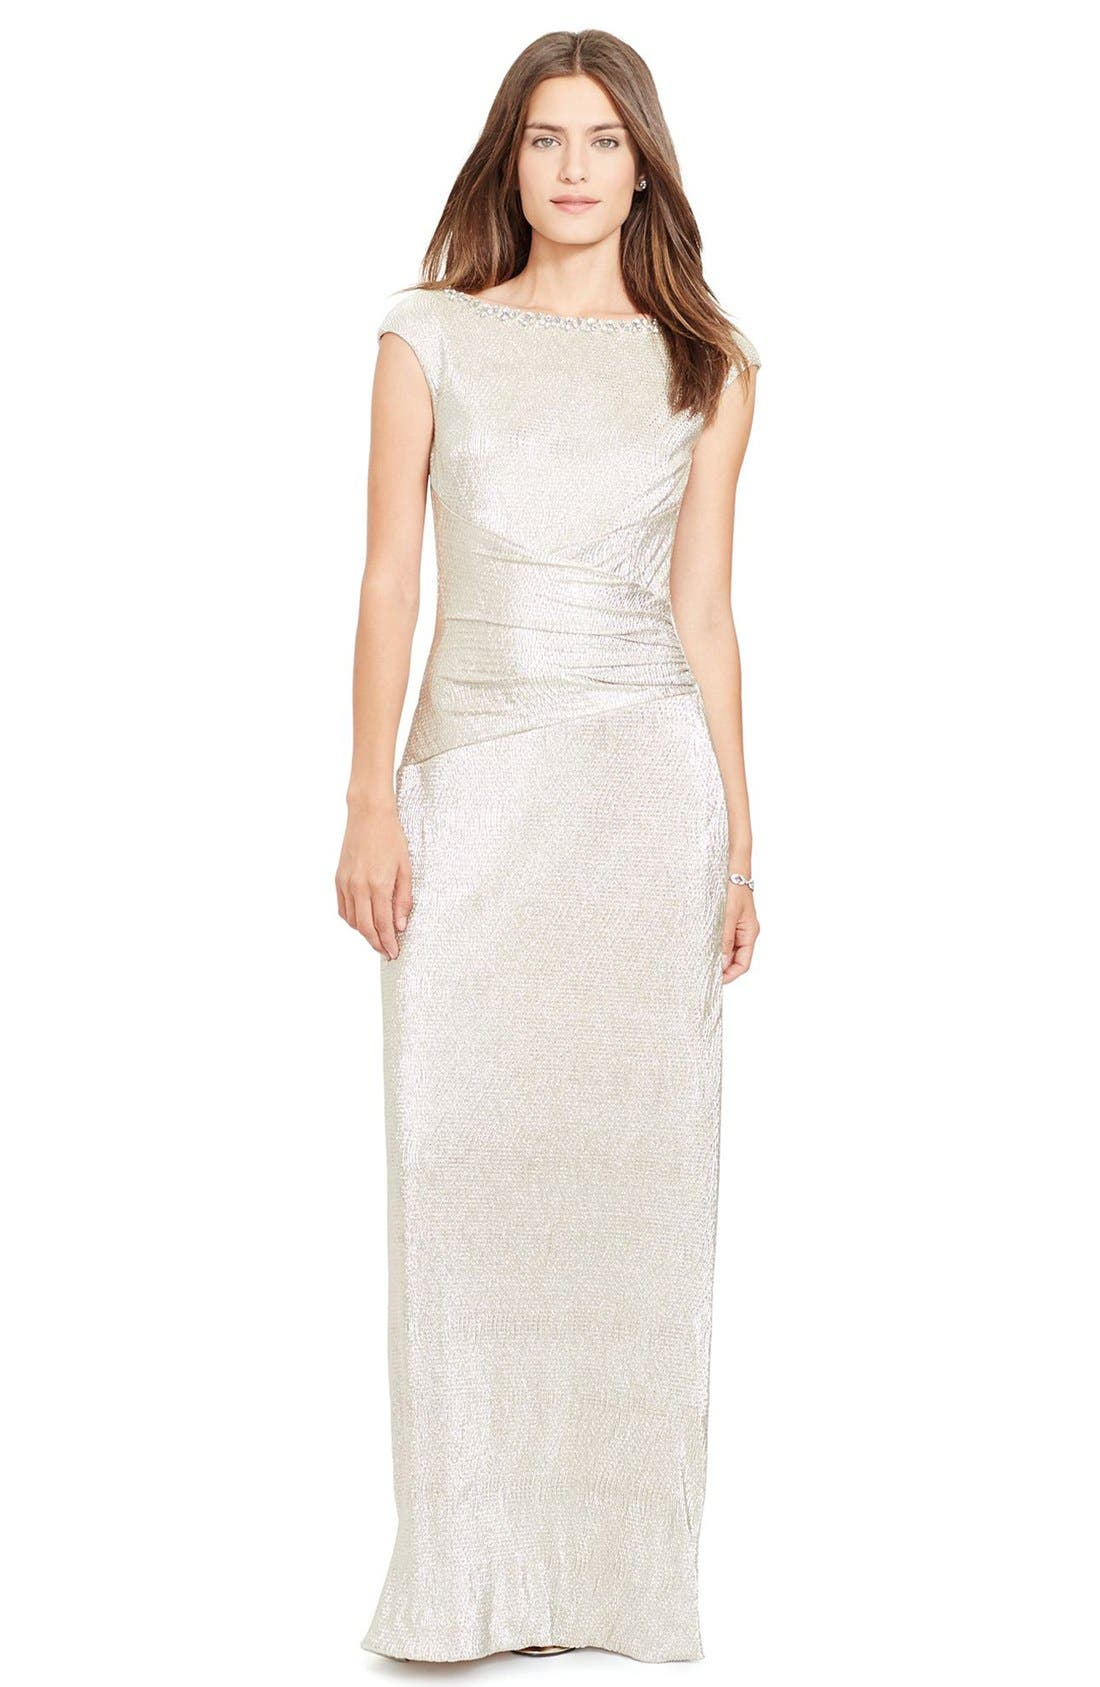 Main Image - Lauren Ralph Lauren Embellished Metallic Knit Column Gown (Regular & Petite)